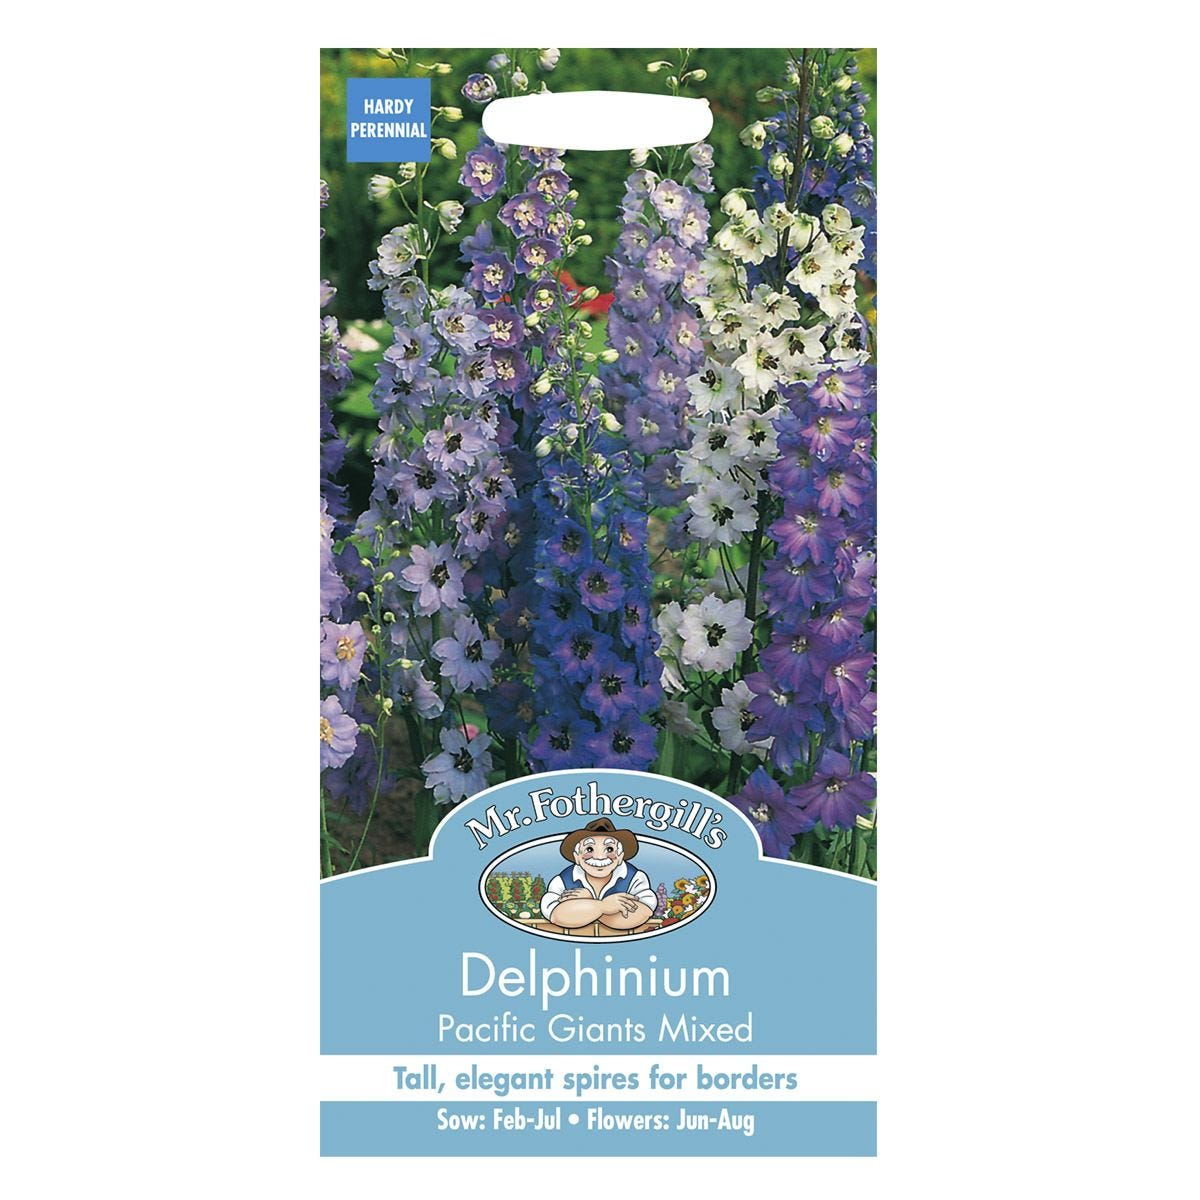 Mr Fothergill's Delphinium Pacific Giants Mixed Seeds